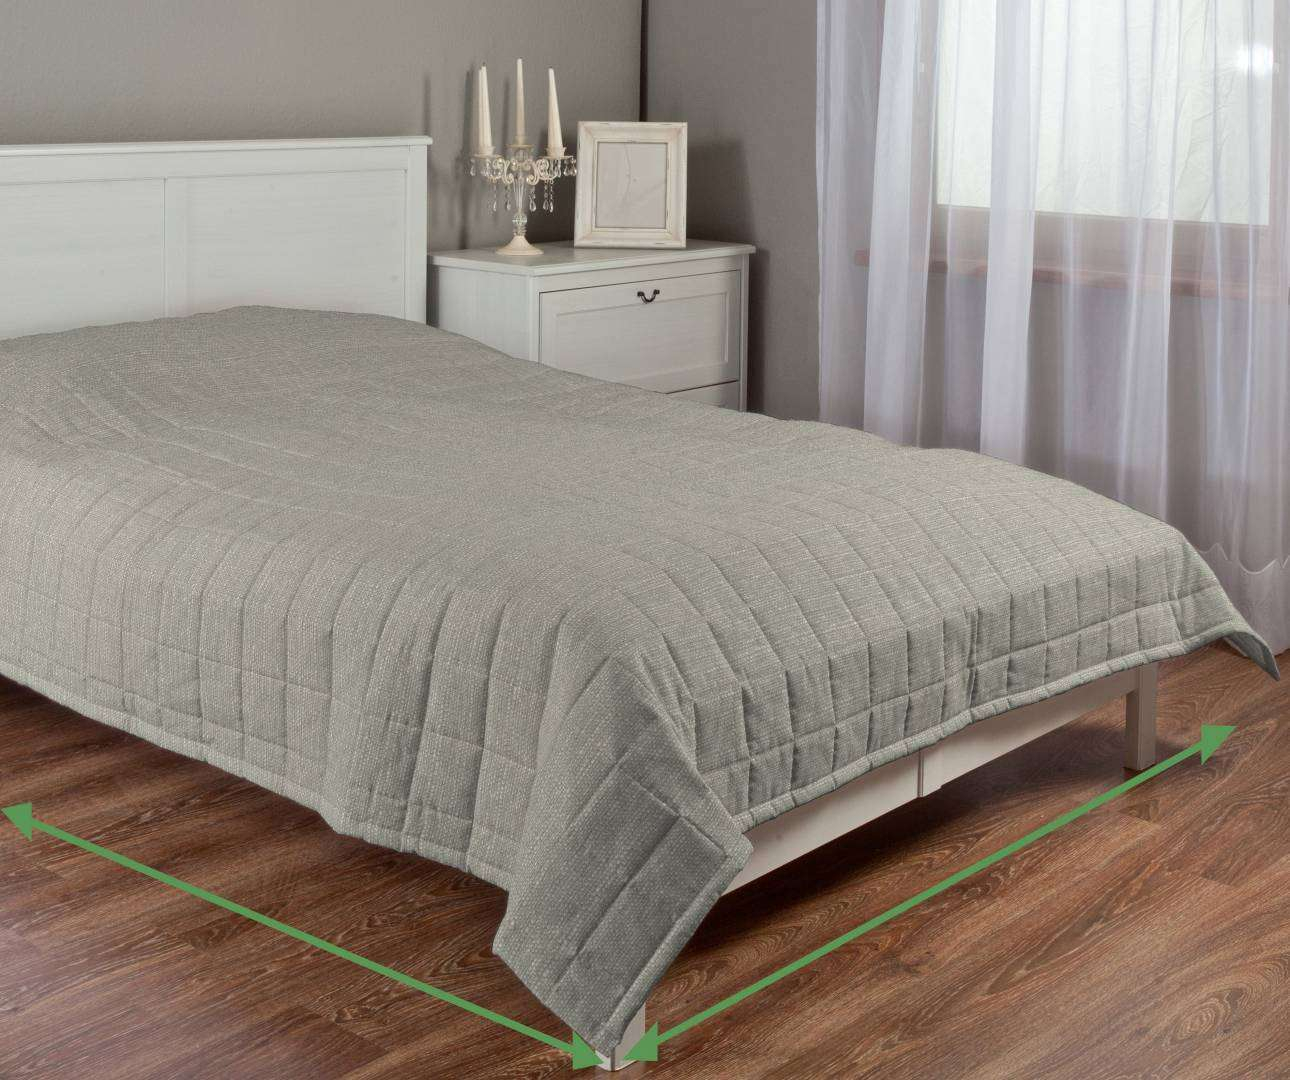 Quilted throw (check quilt pattern) in collection Granada, fabric: 104-91